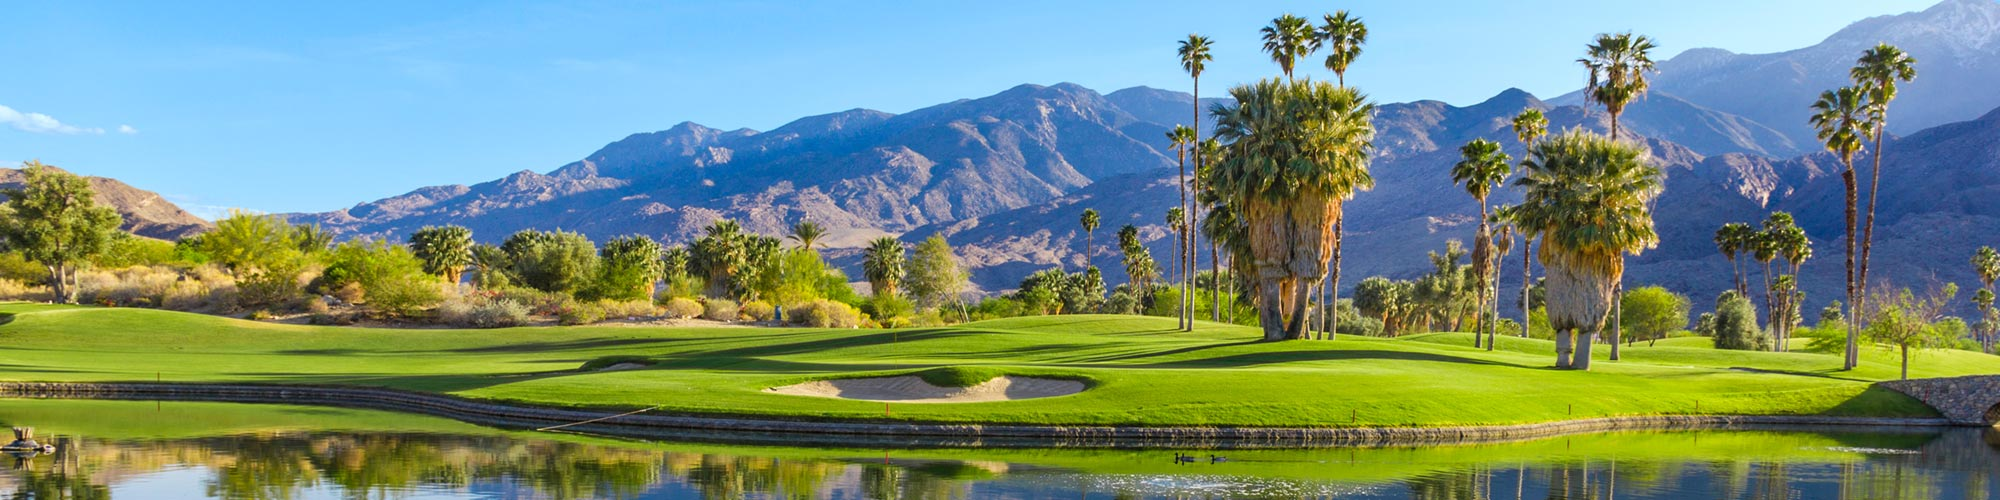 Flights from Vancouver to Palm Springs